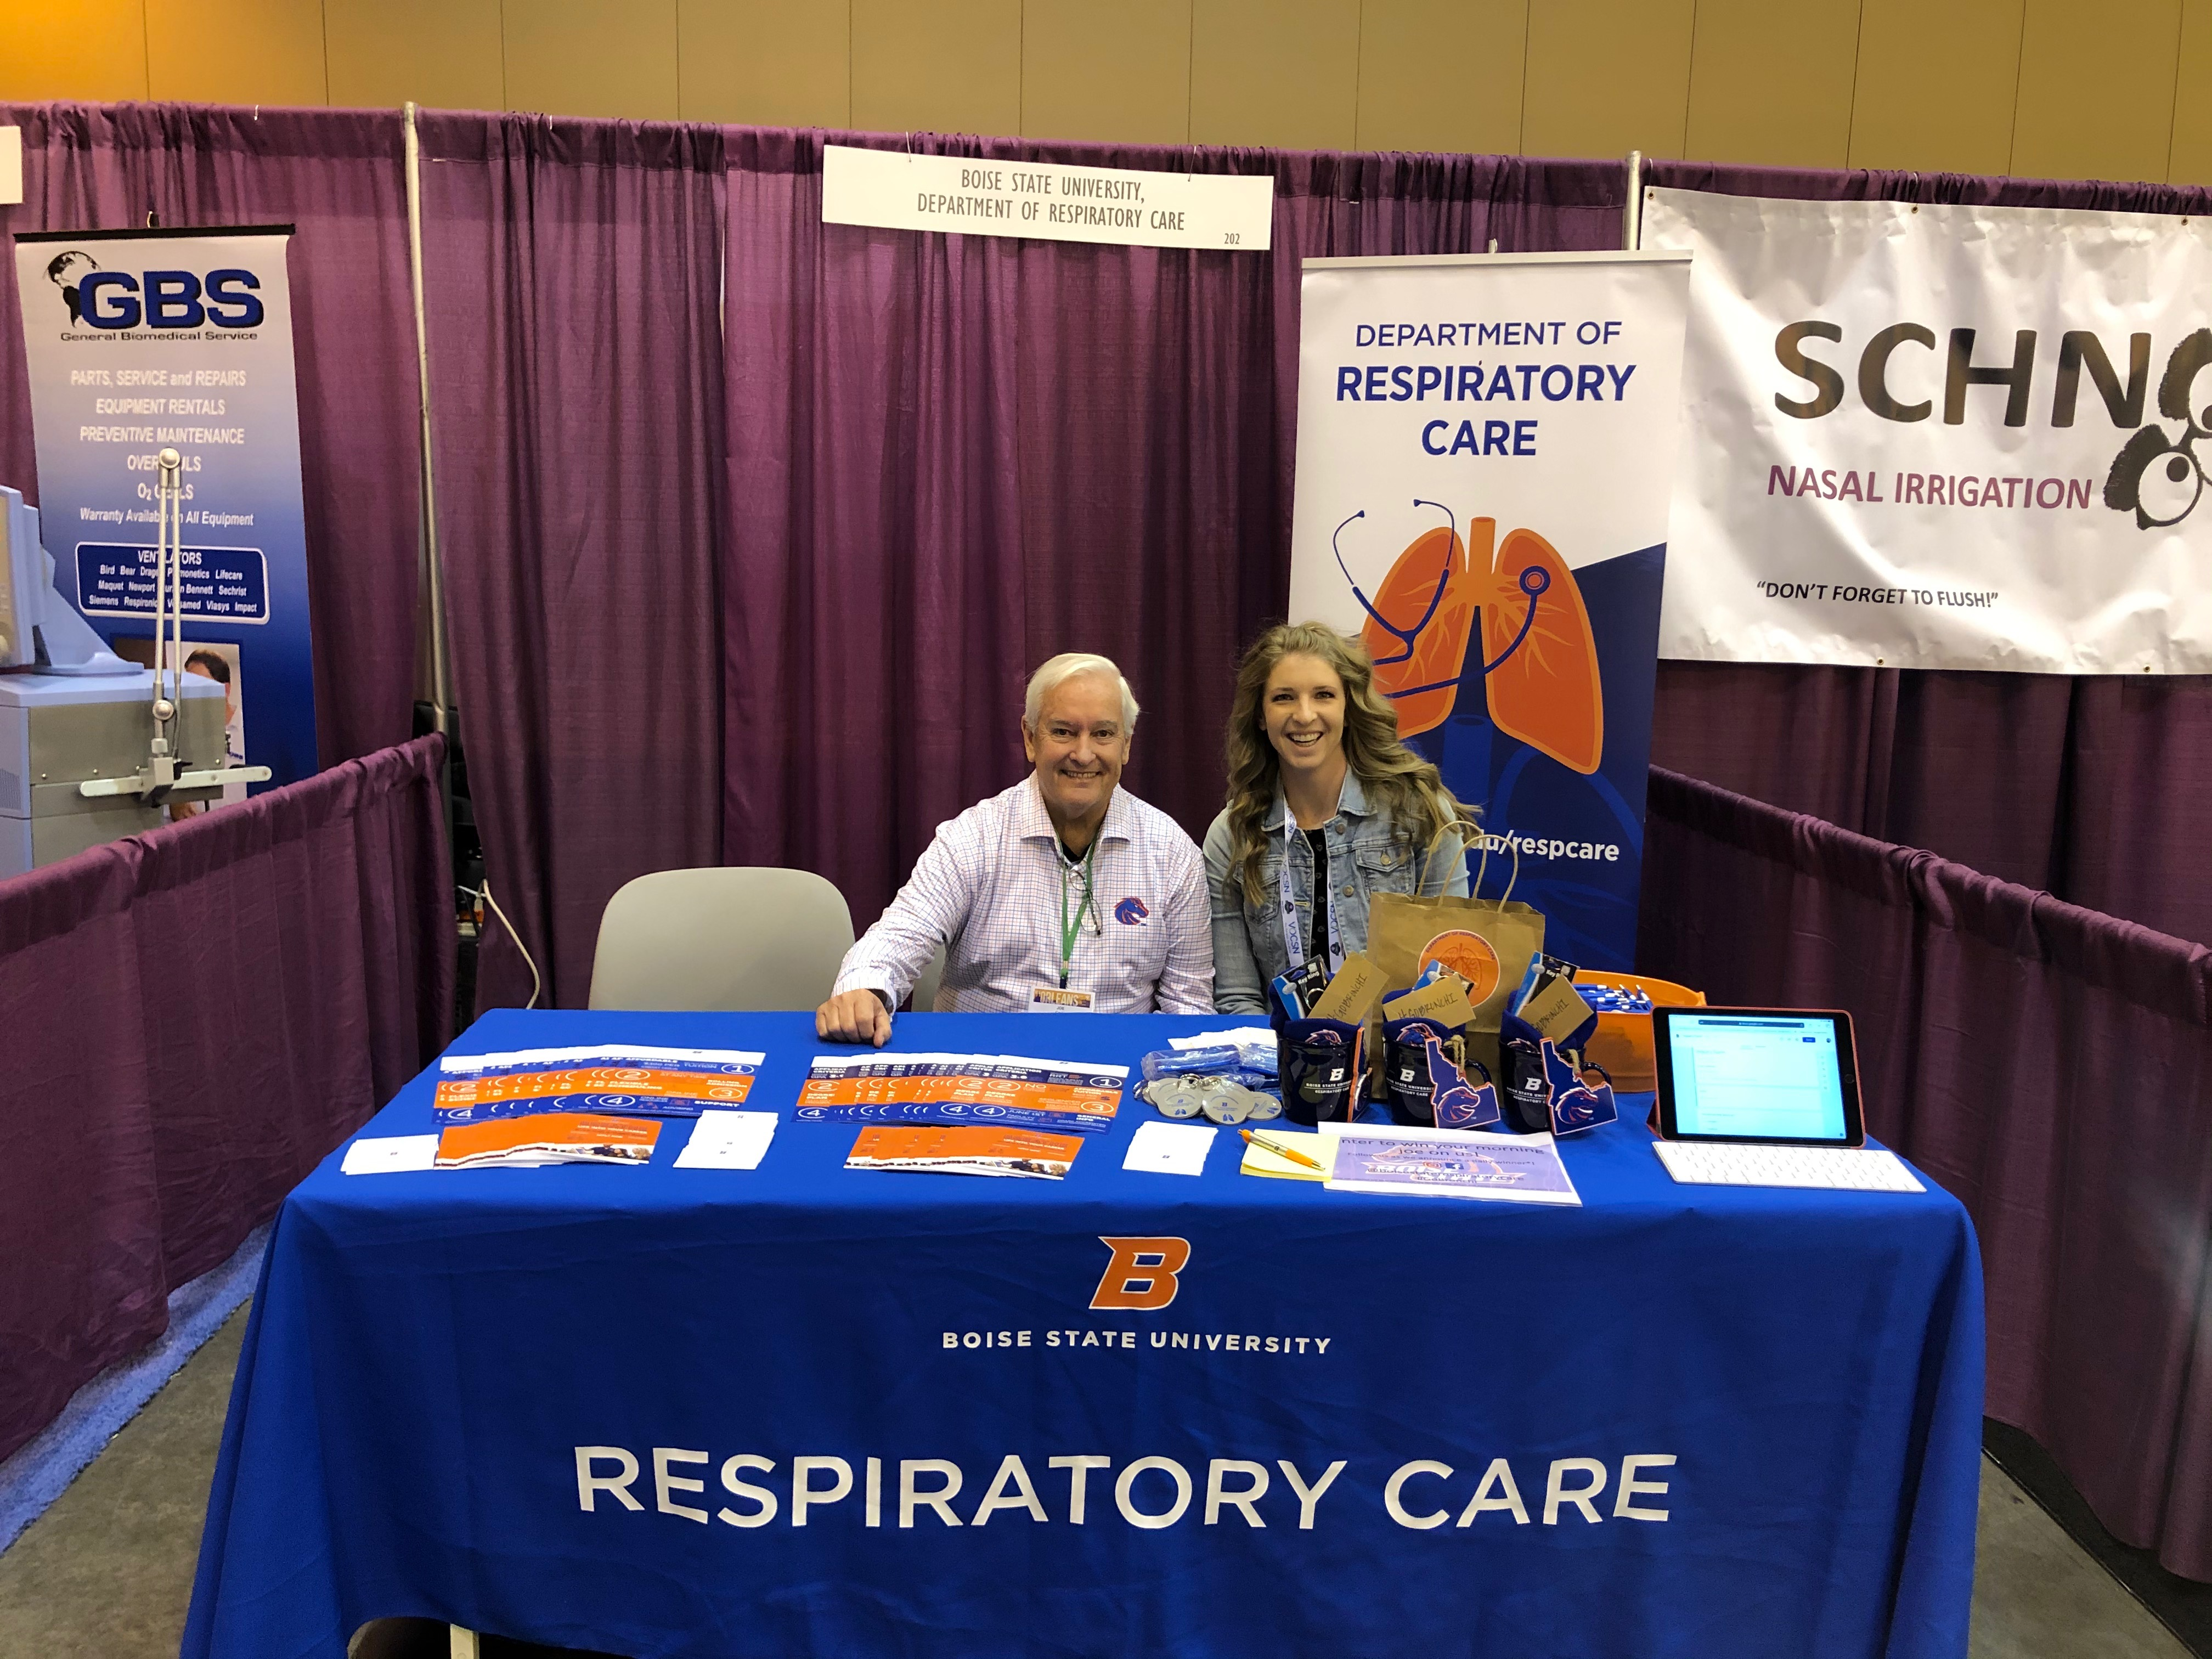 """Faculty sitting at a table at the event that reads """"Respiratory Care"""""""